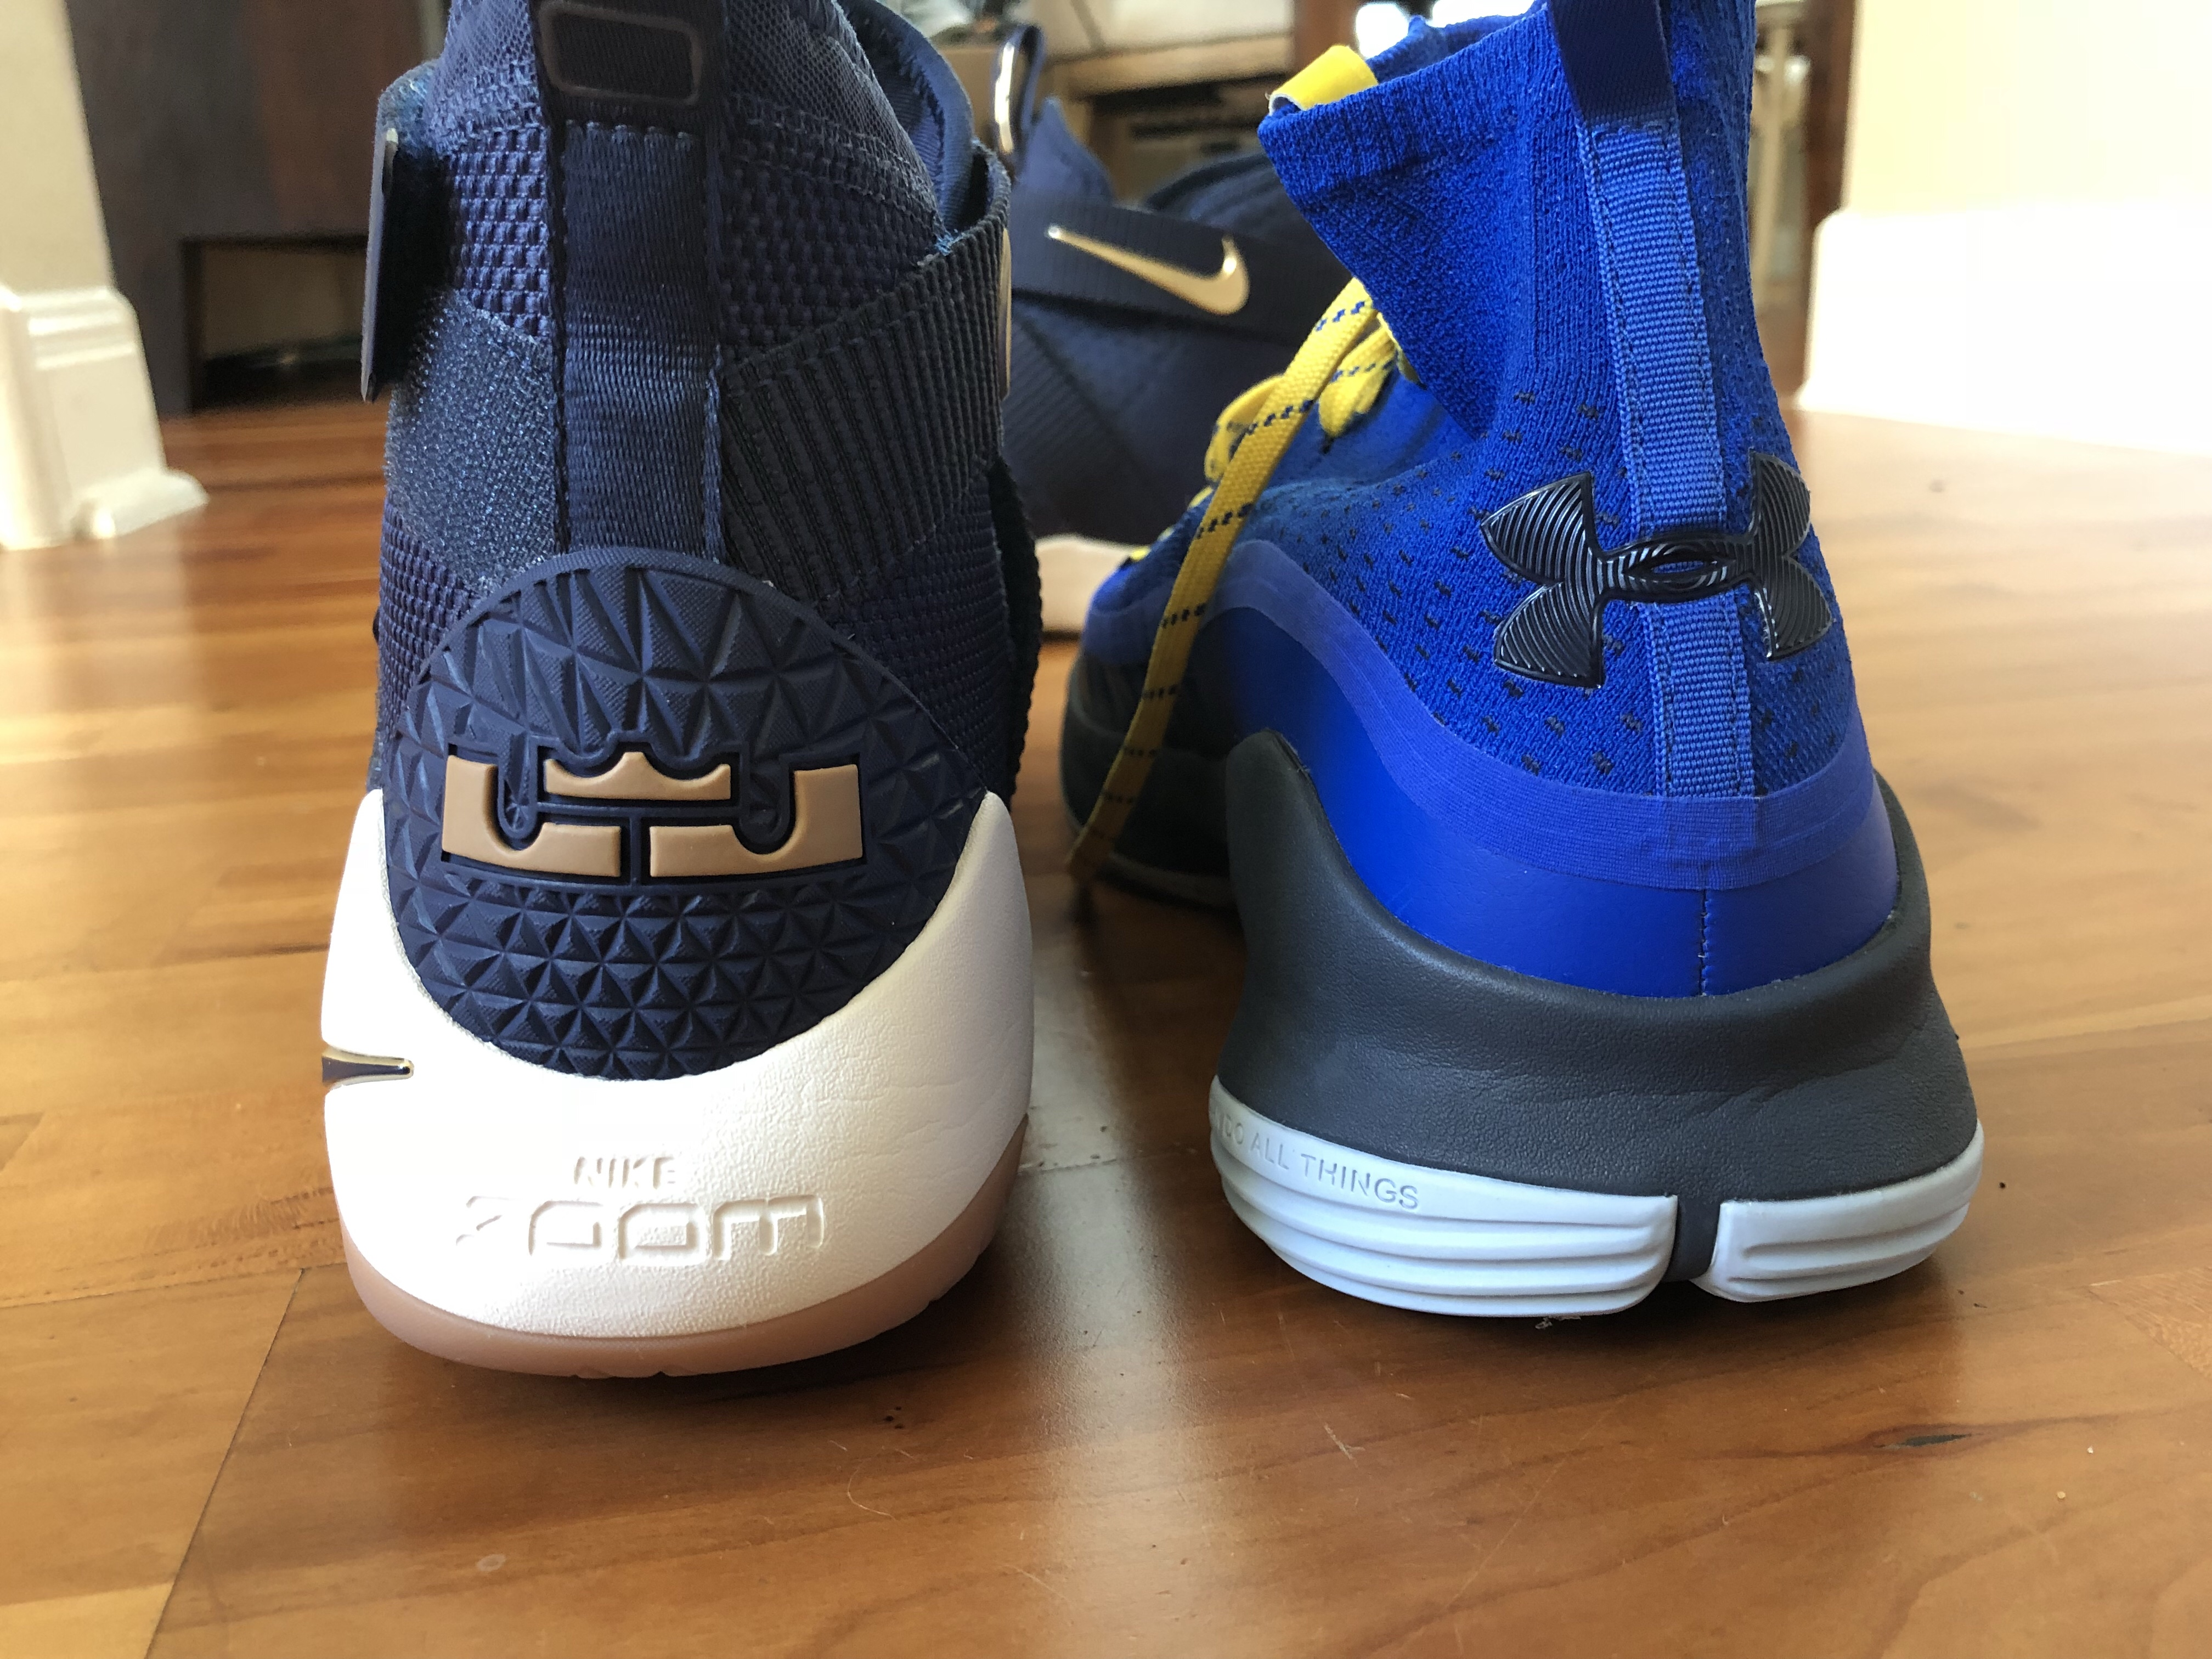 Support really comes from the fit and the firm heel counter. It's  interesting how the Soldier and Curry 4 employ the sculpted midsole.